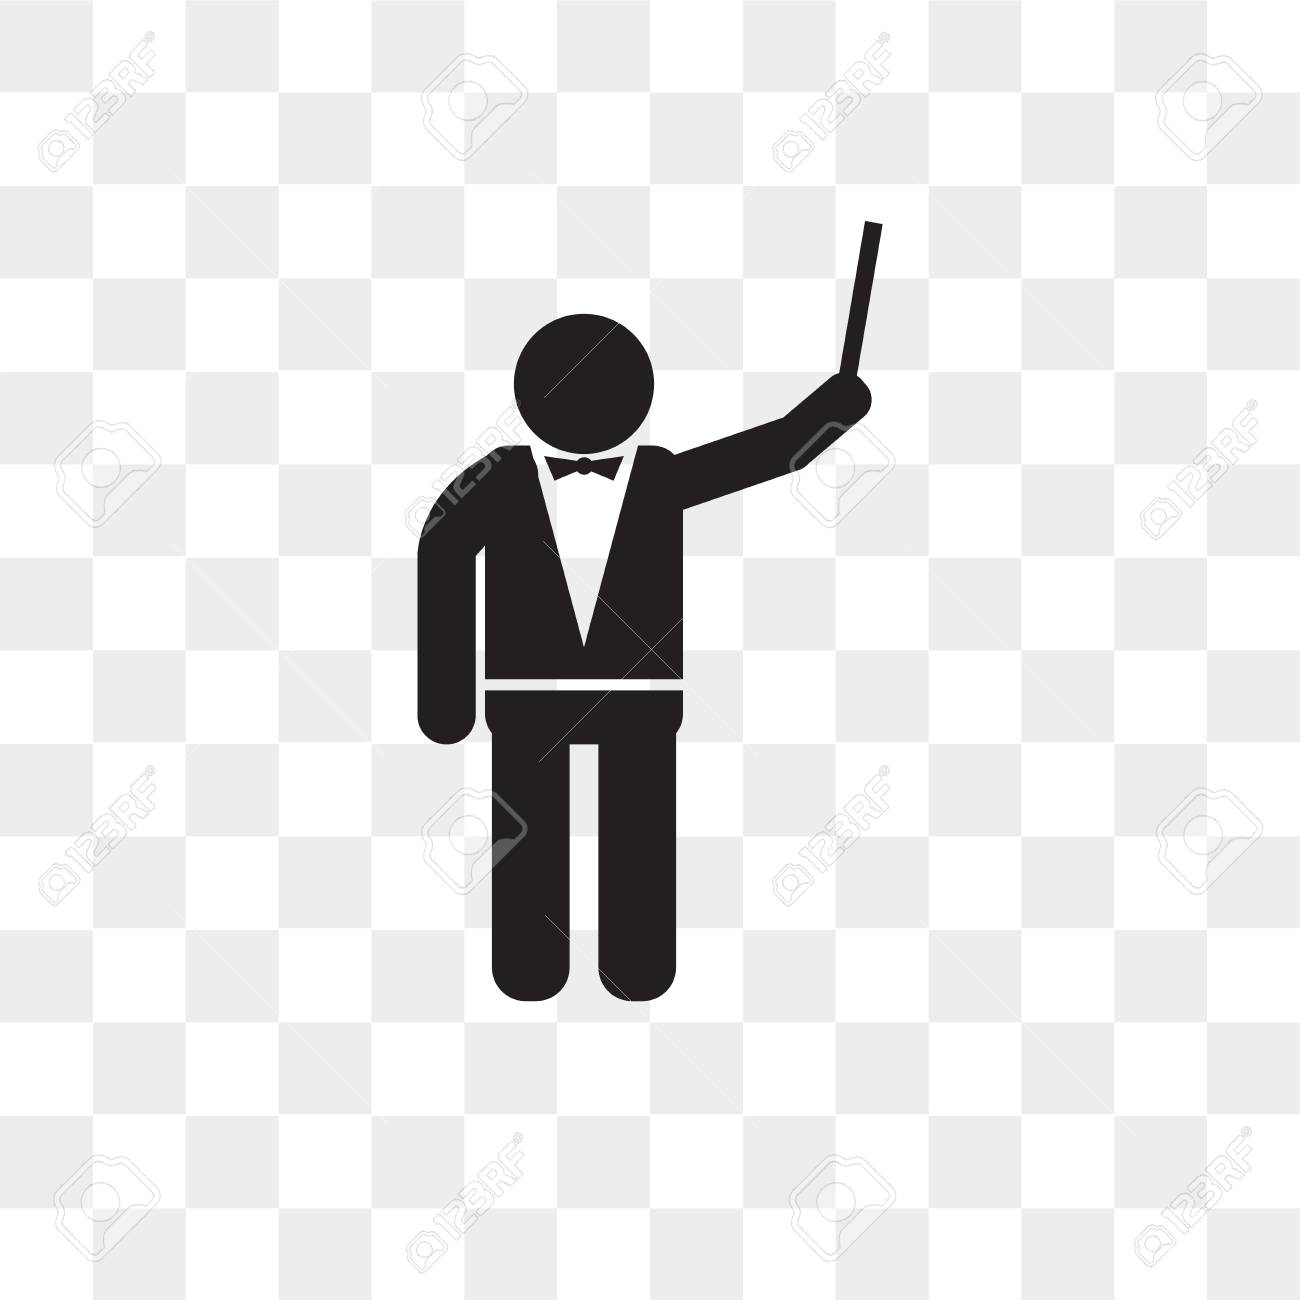 Orchestra director vector icon isolated on transparent background, Orchestra director logo concept - 108633618